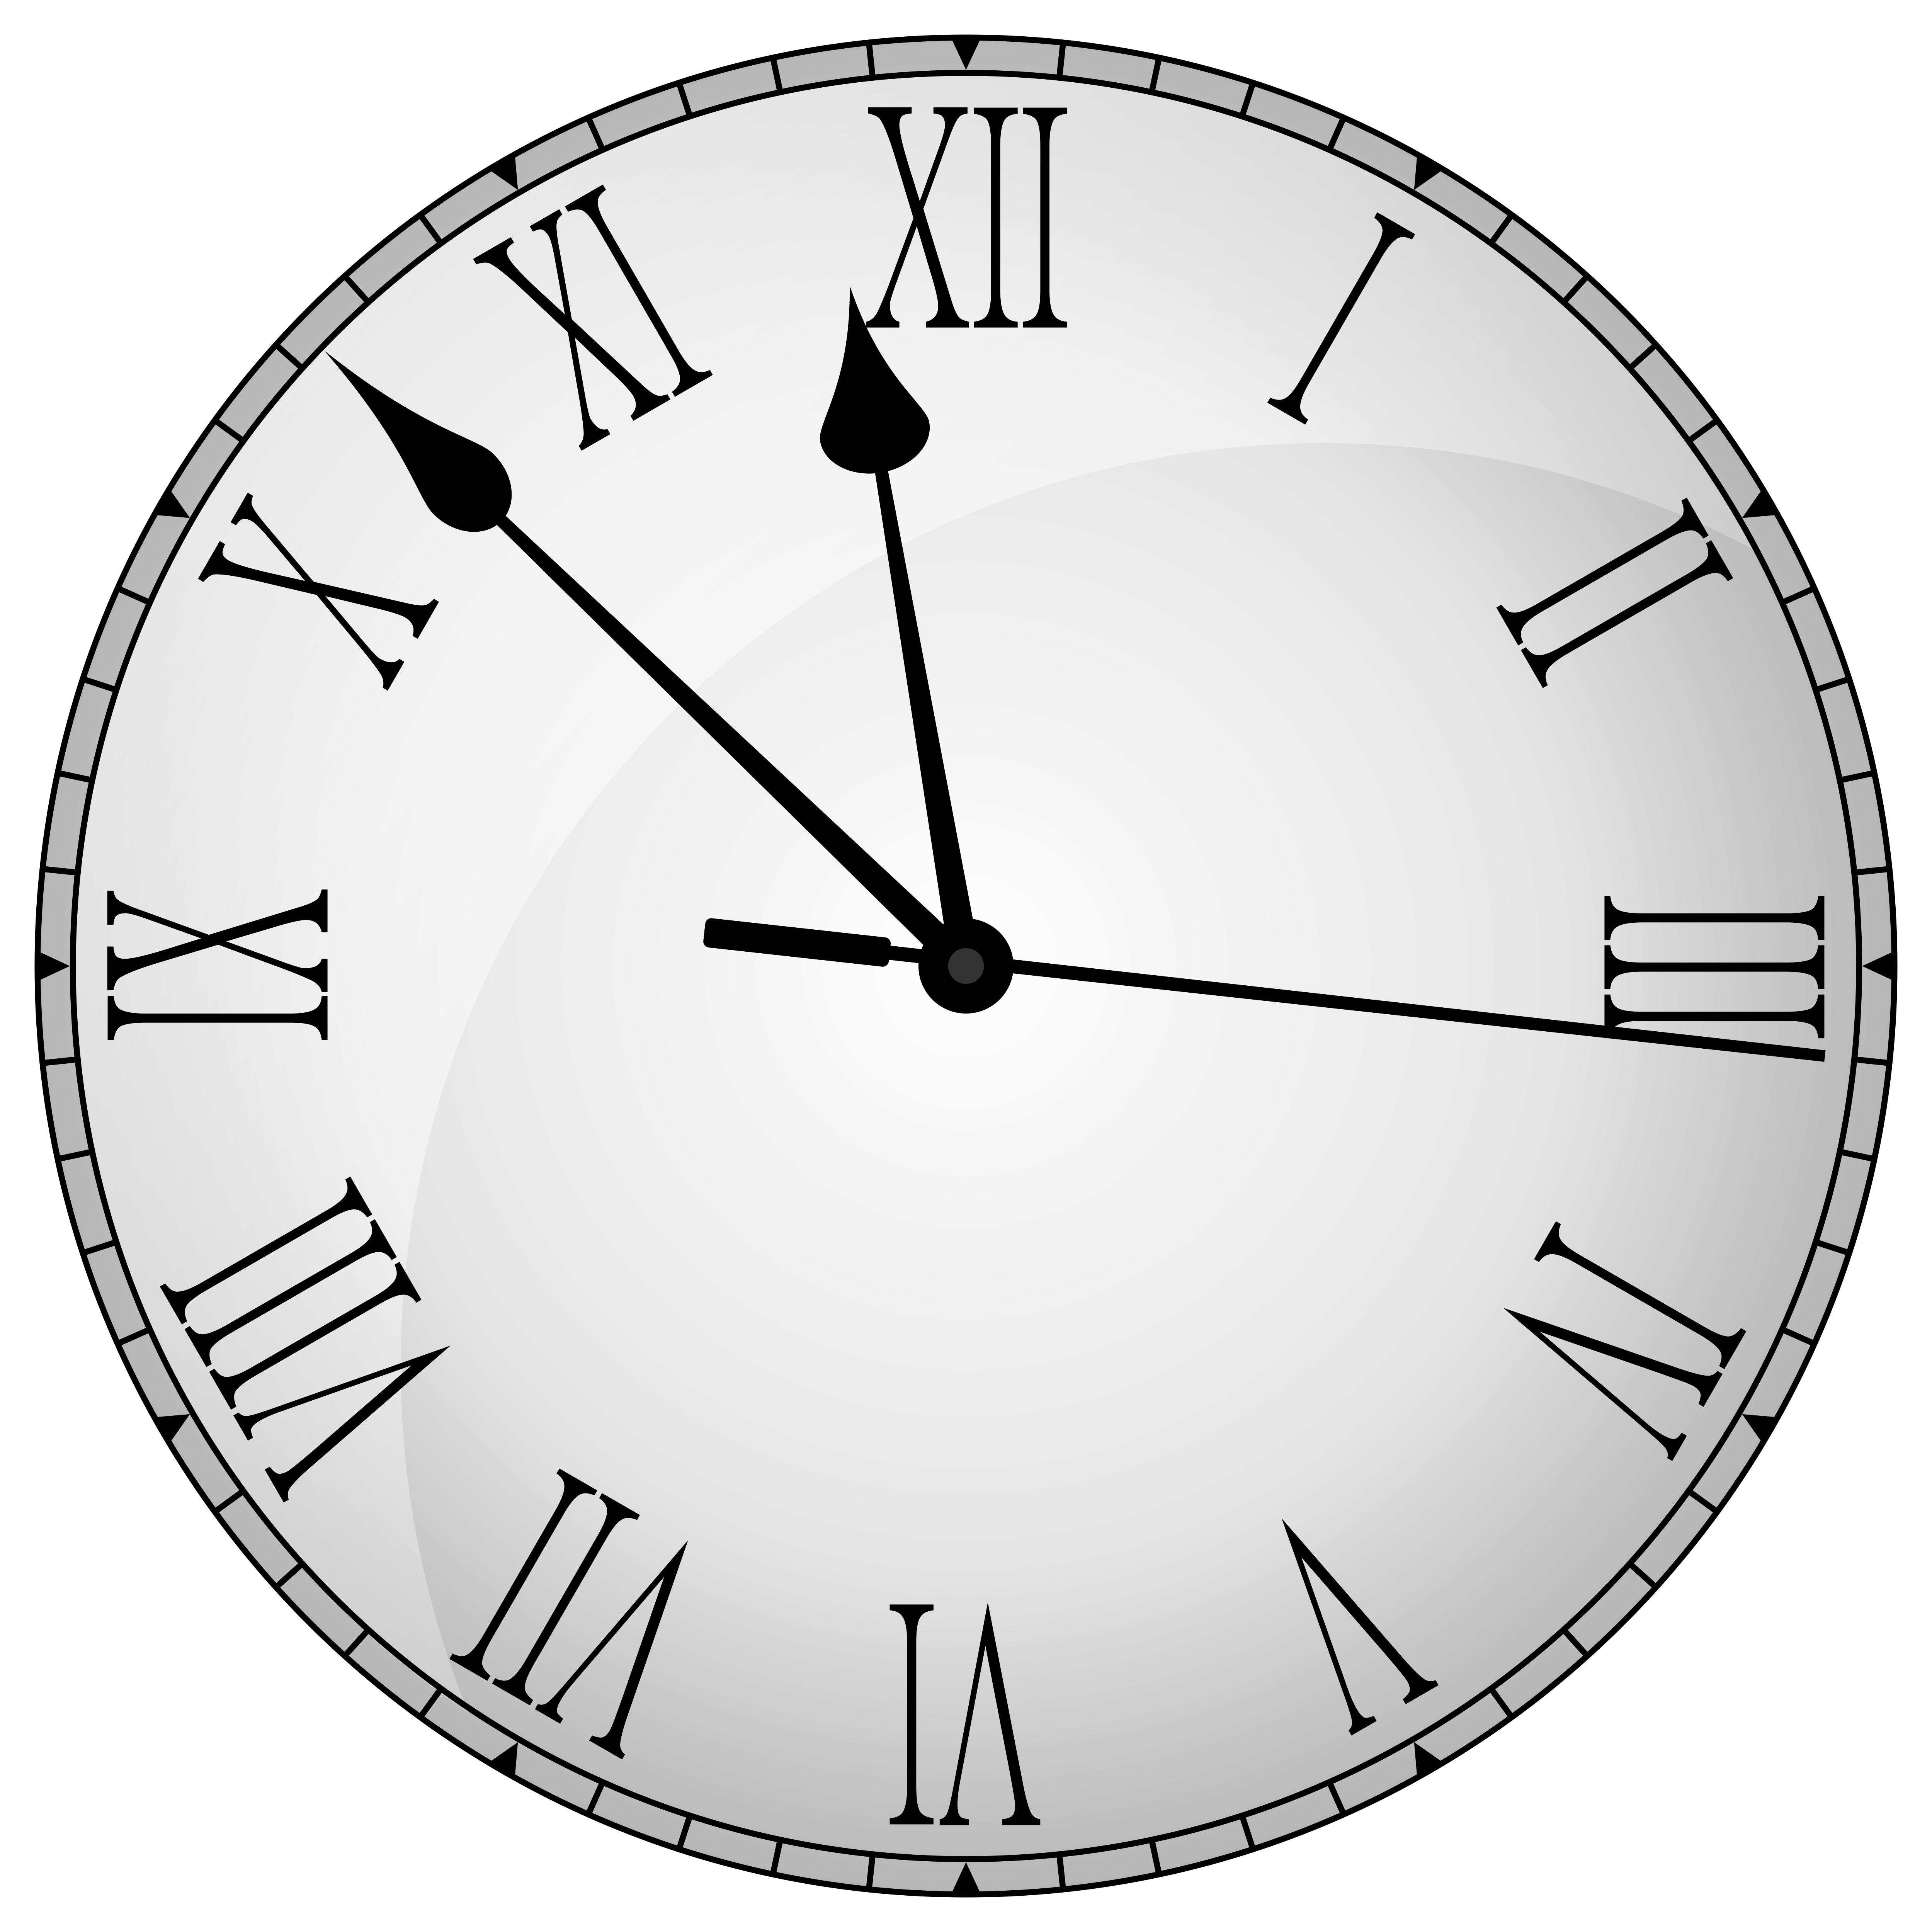 Line Drawing Clock Face : Clocks the memories project